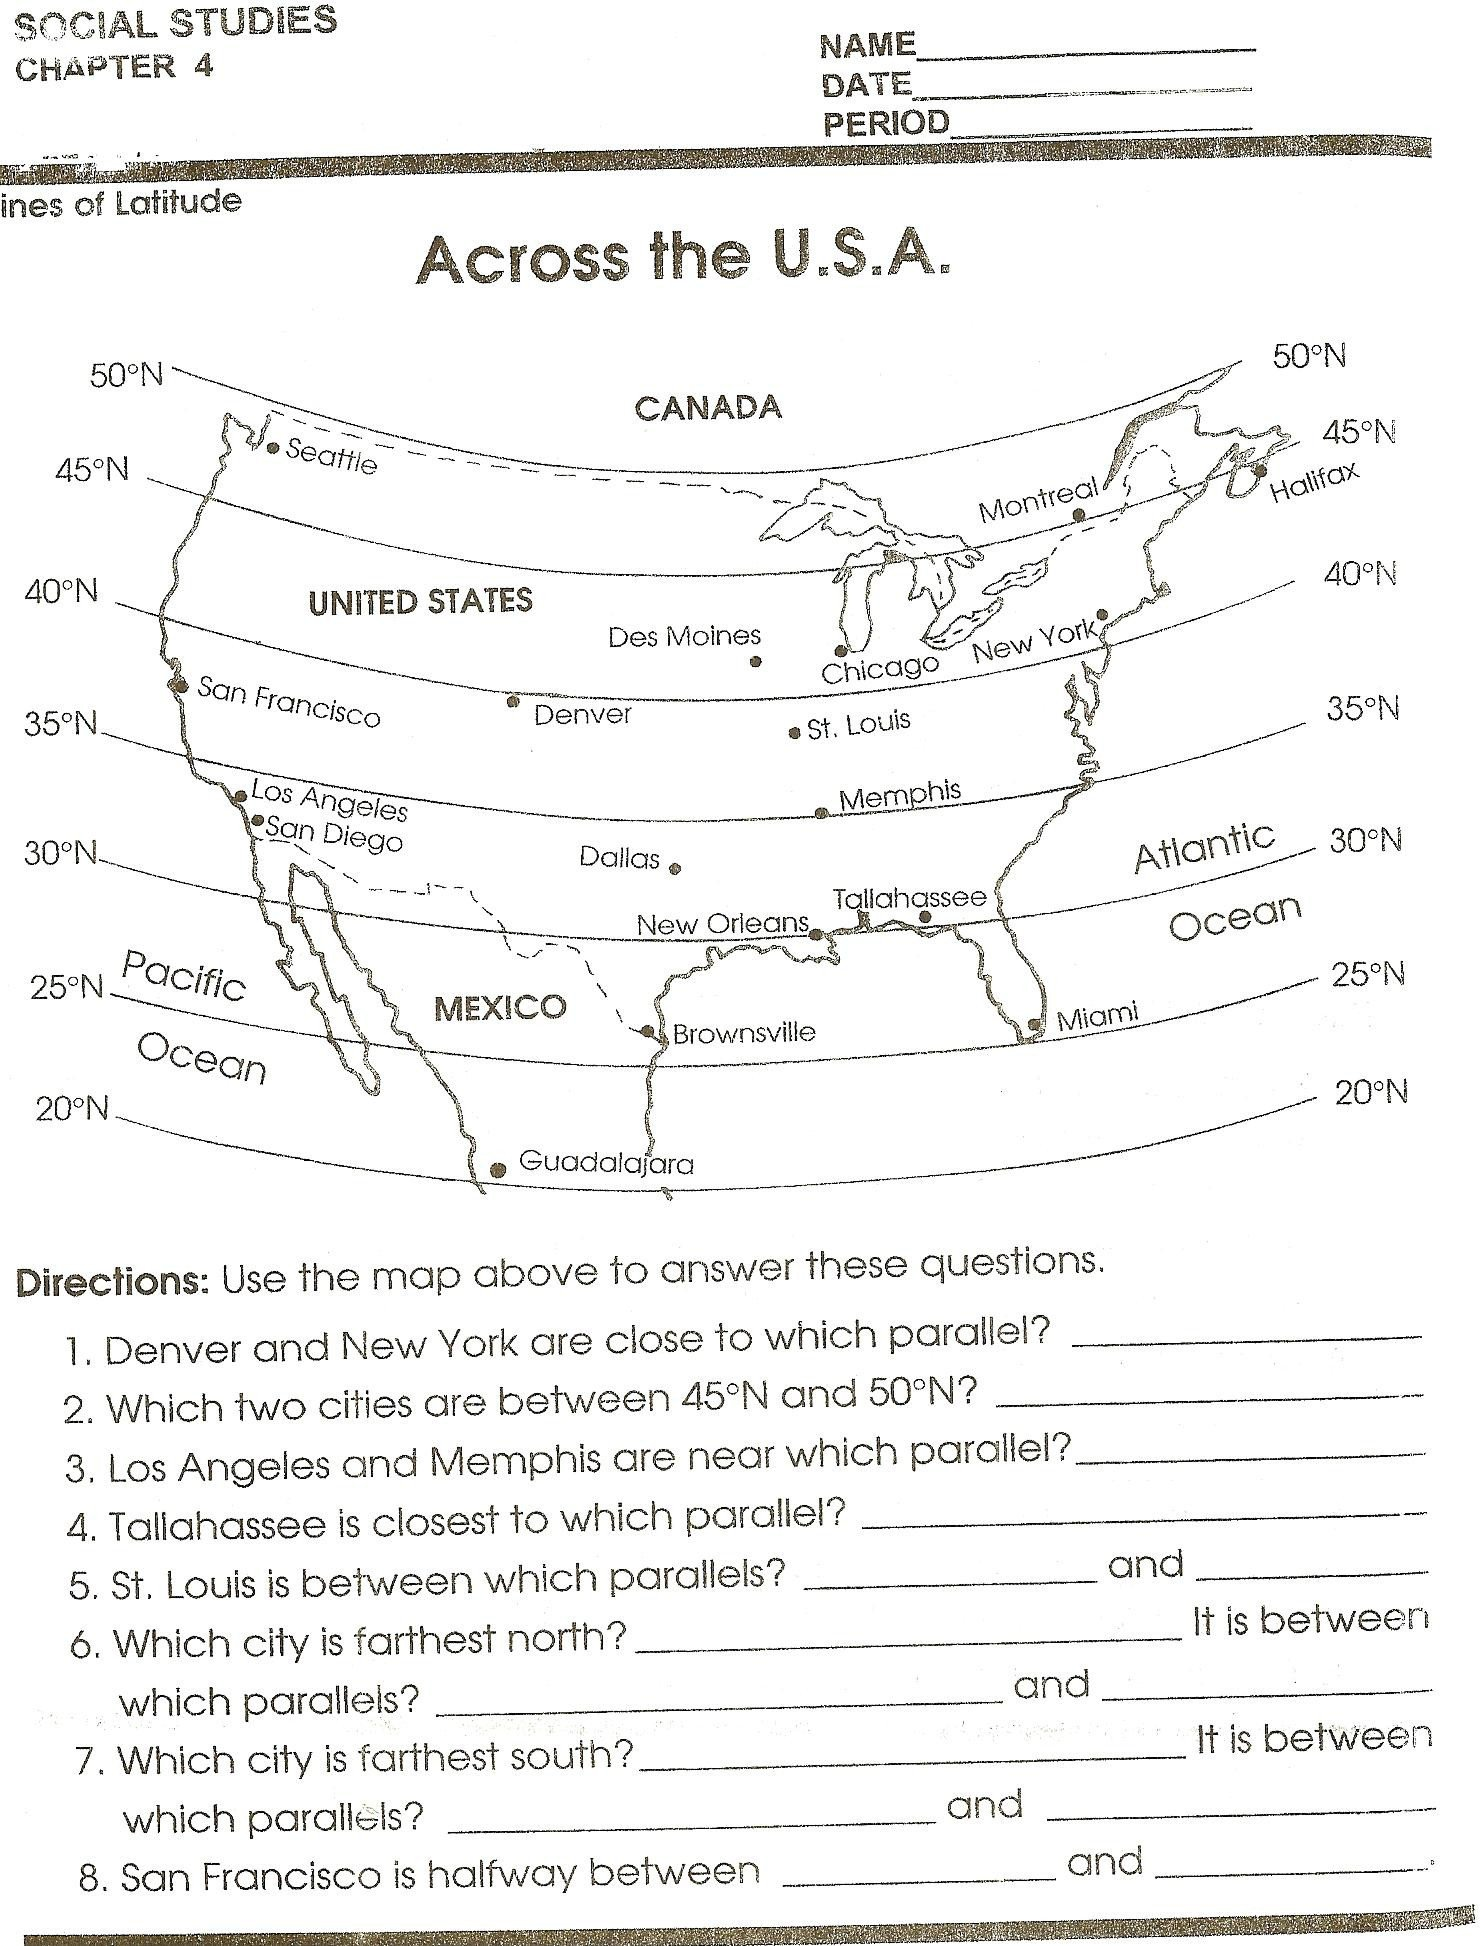 Map Skills Worksheet 4th Grade social Stu S Mapping Grade social Stu S Curriculum Map